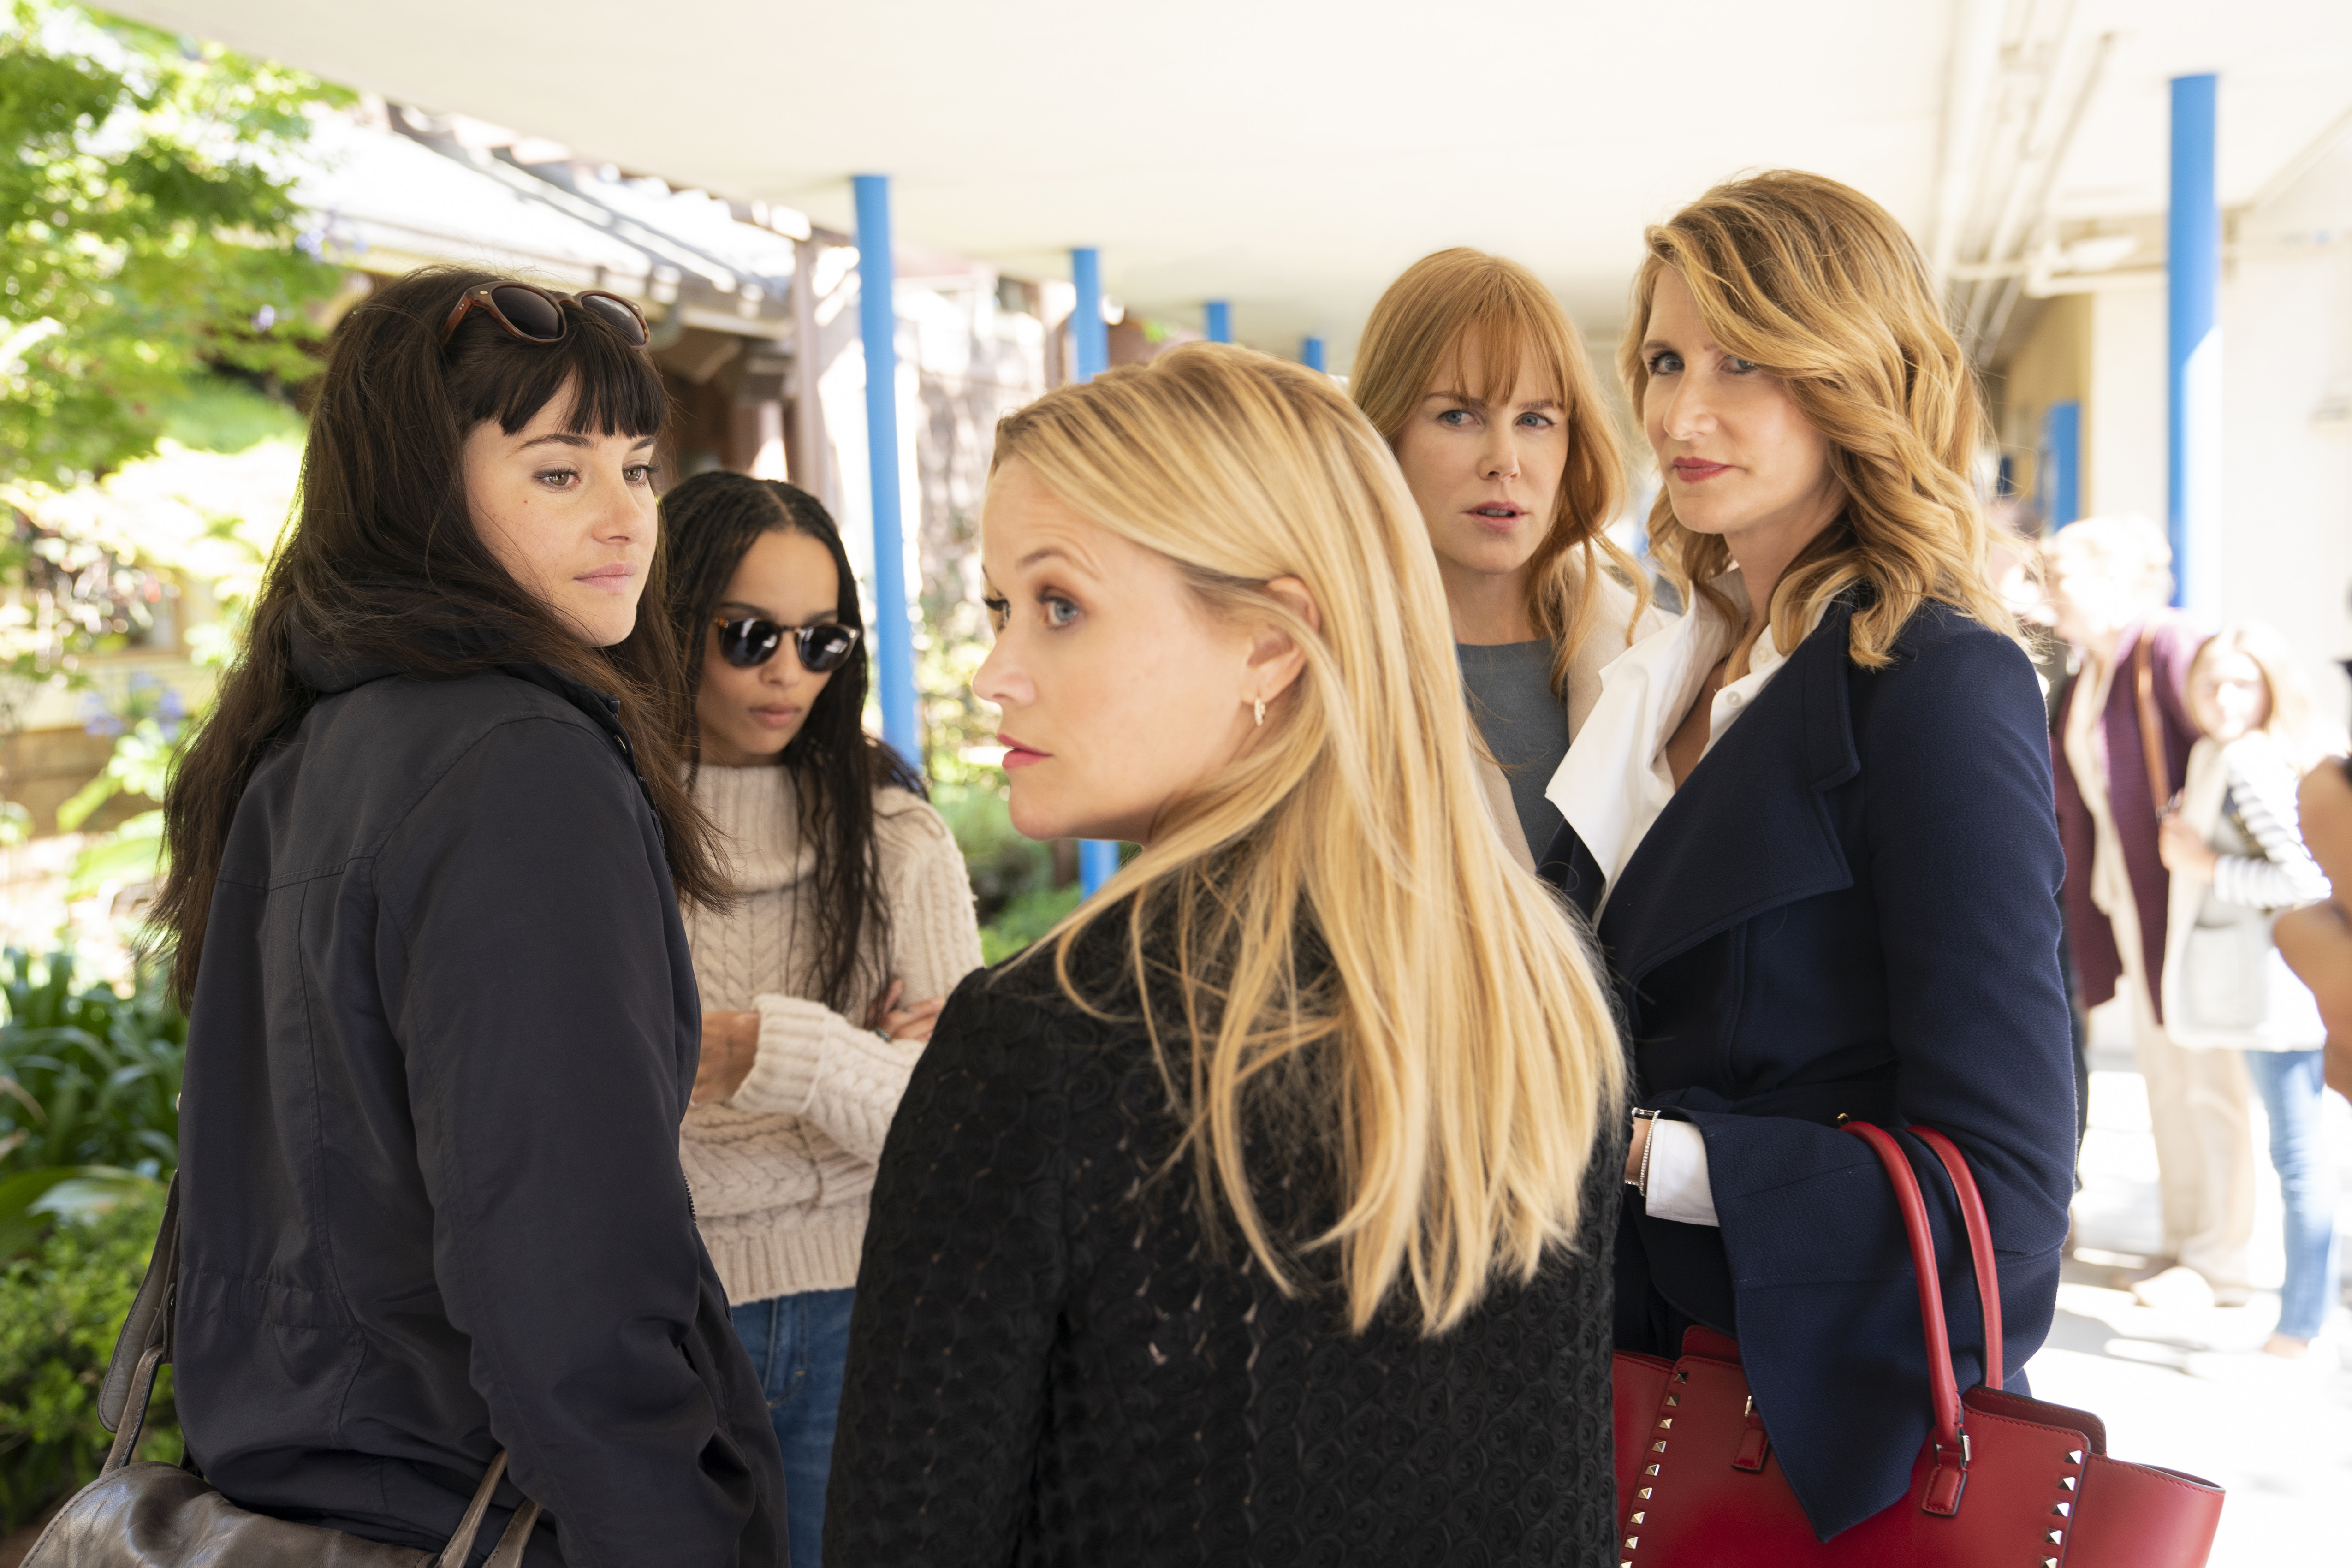 https://www.indiewire.com/2019/07/big-little-lies-season-2-andrea-arnold-lost-creative-control-jean-marc-vallee-1202156884/